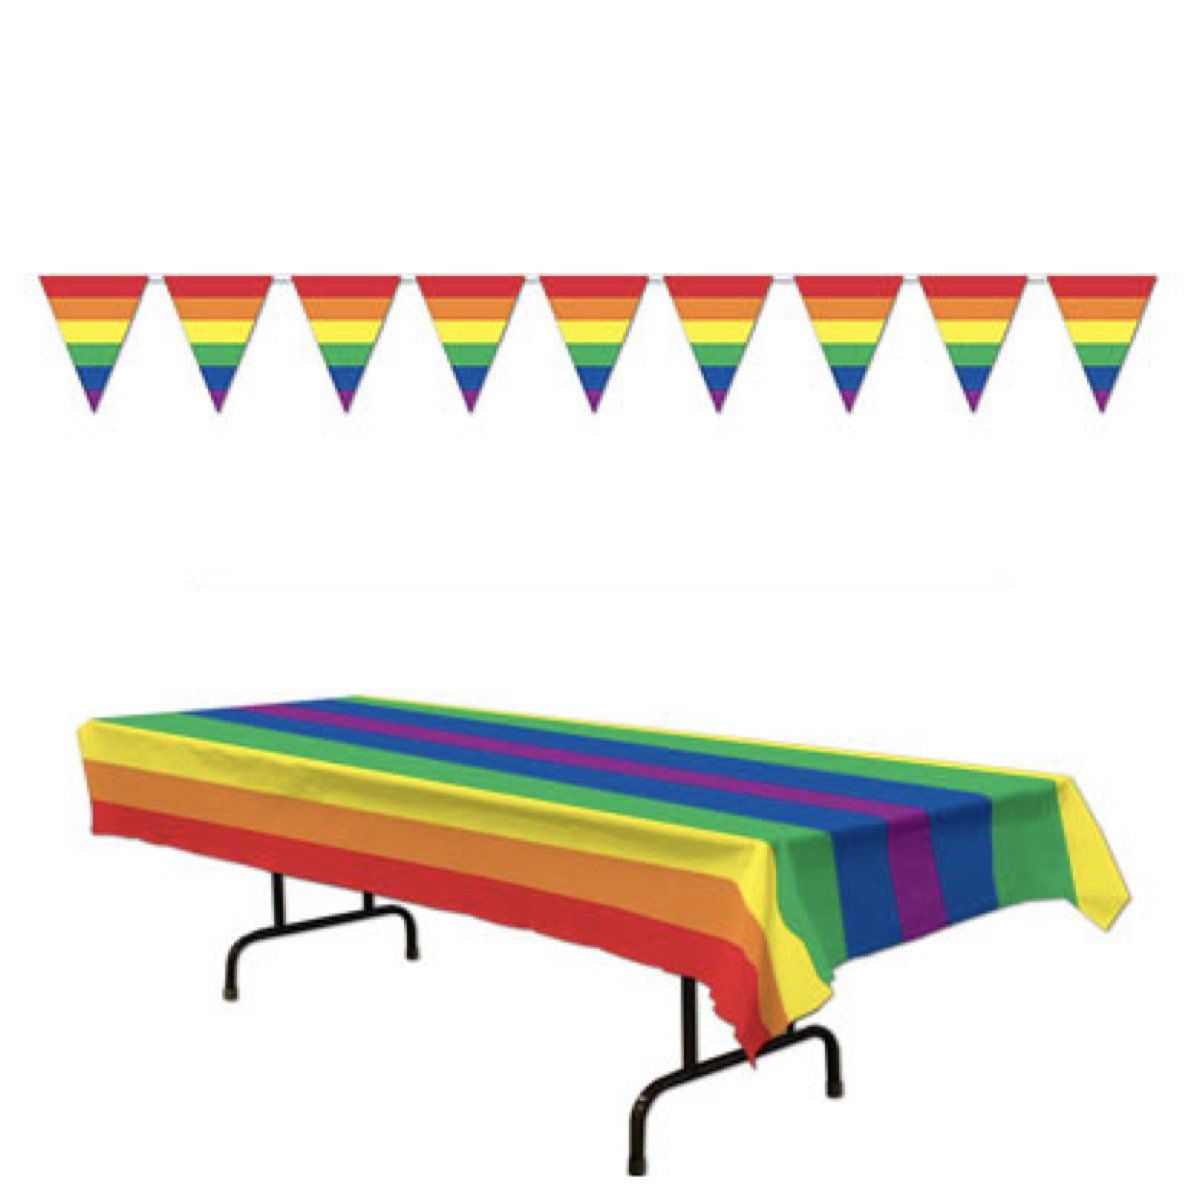 Just4fun RAINBOW Party Decorations TABLECLOTH & Pennants - PRIDE - DECOR Gay LGBT Parties Events